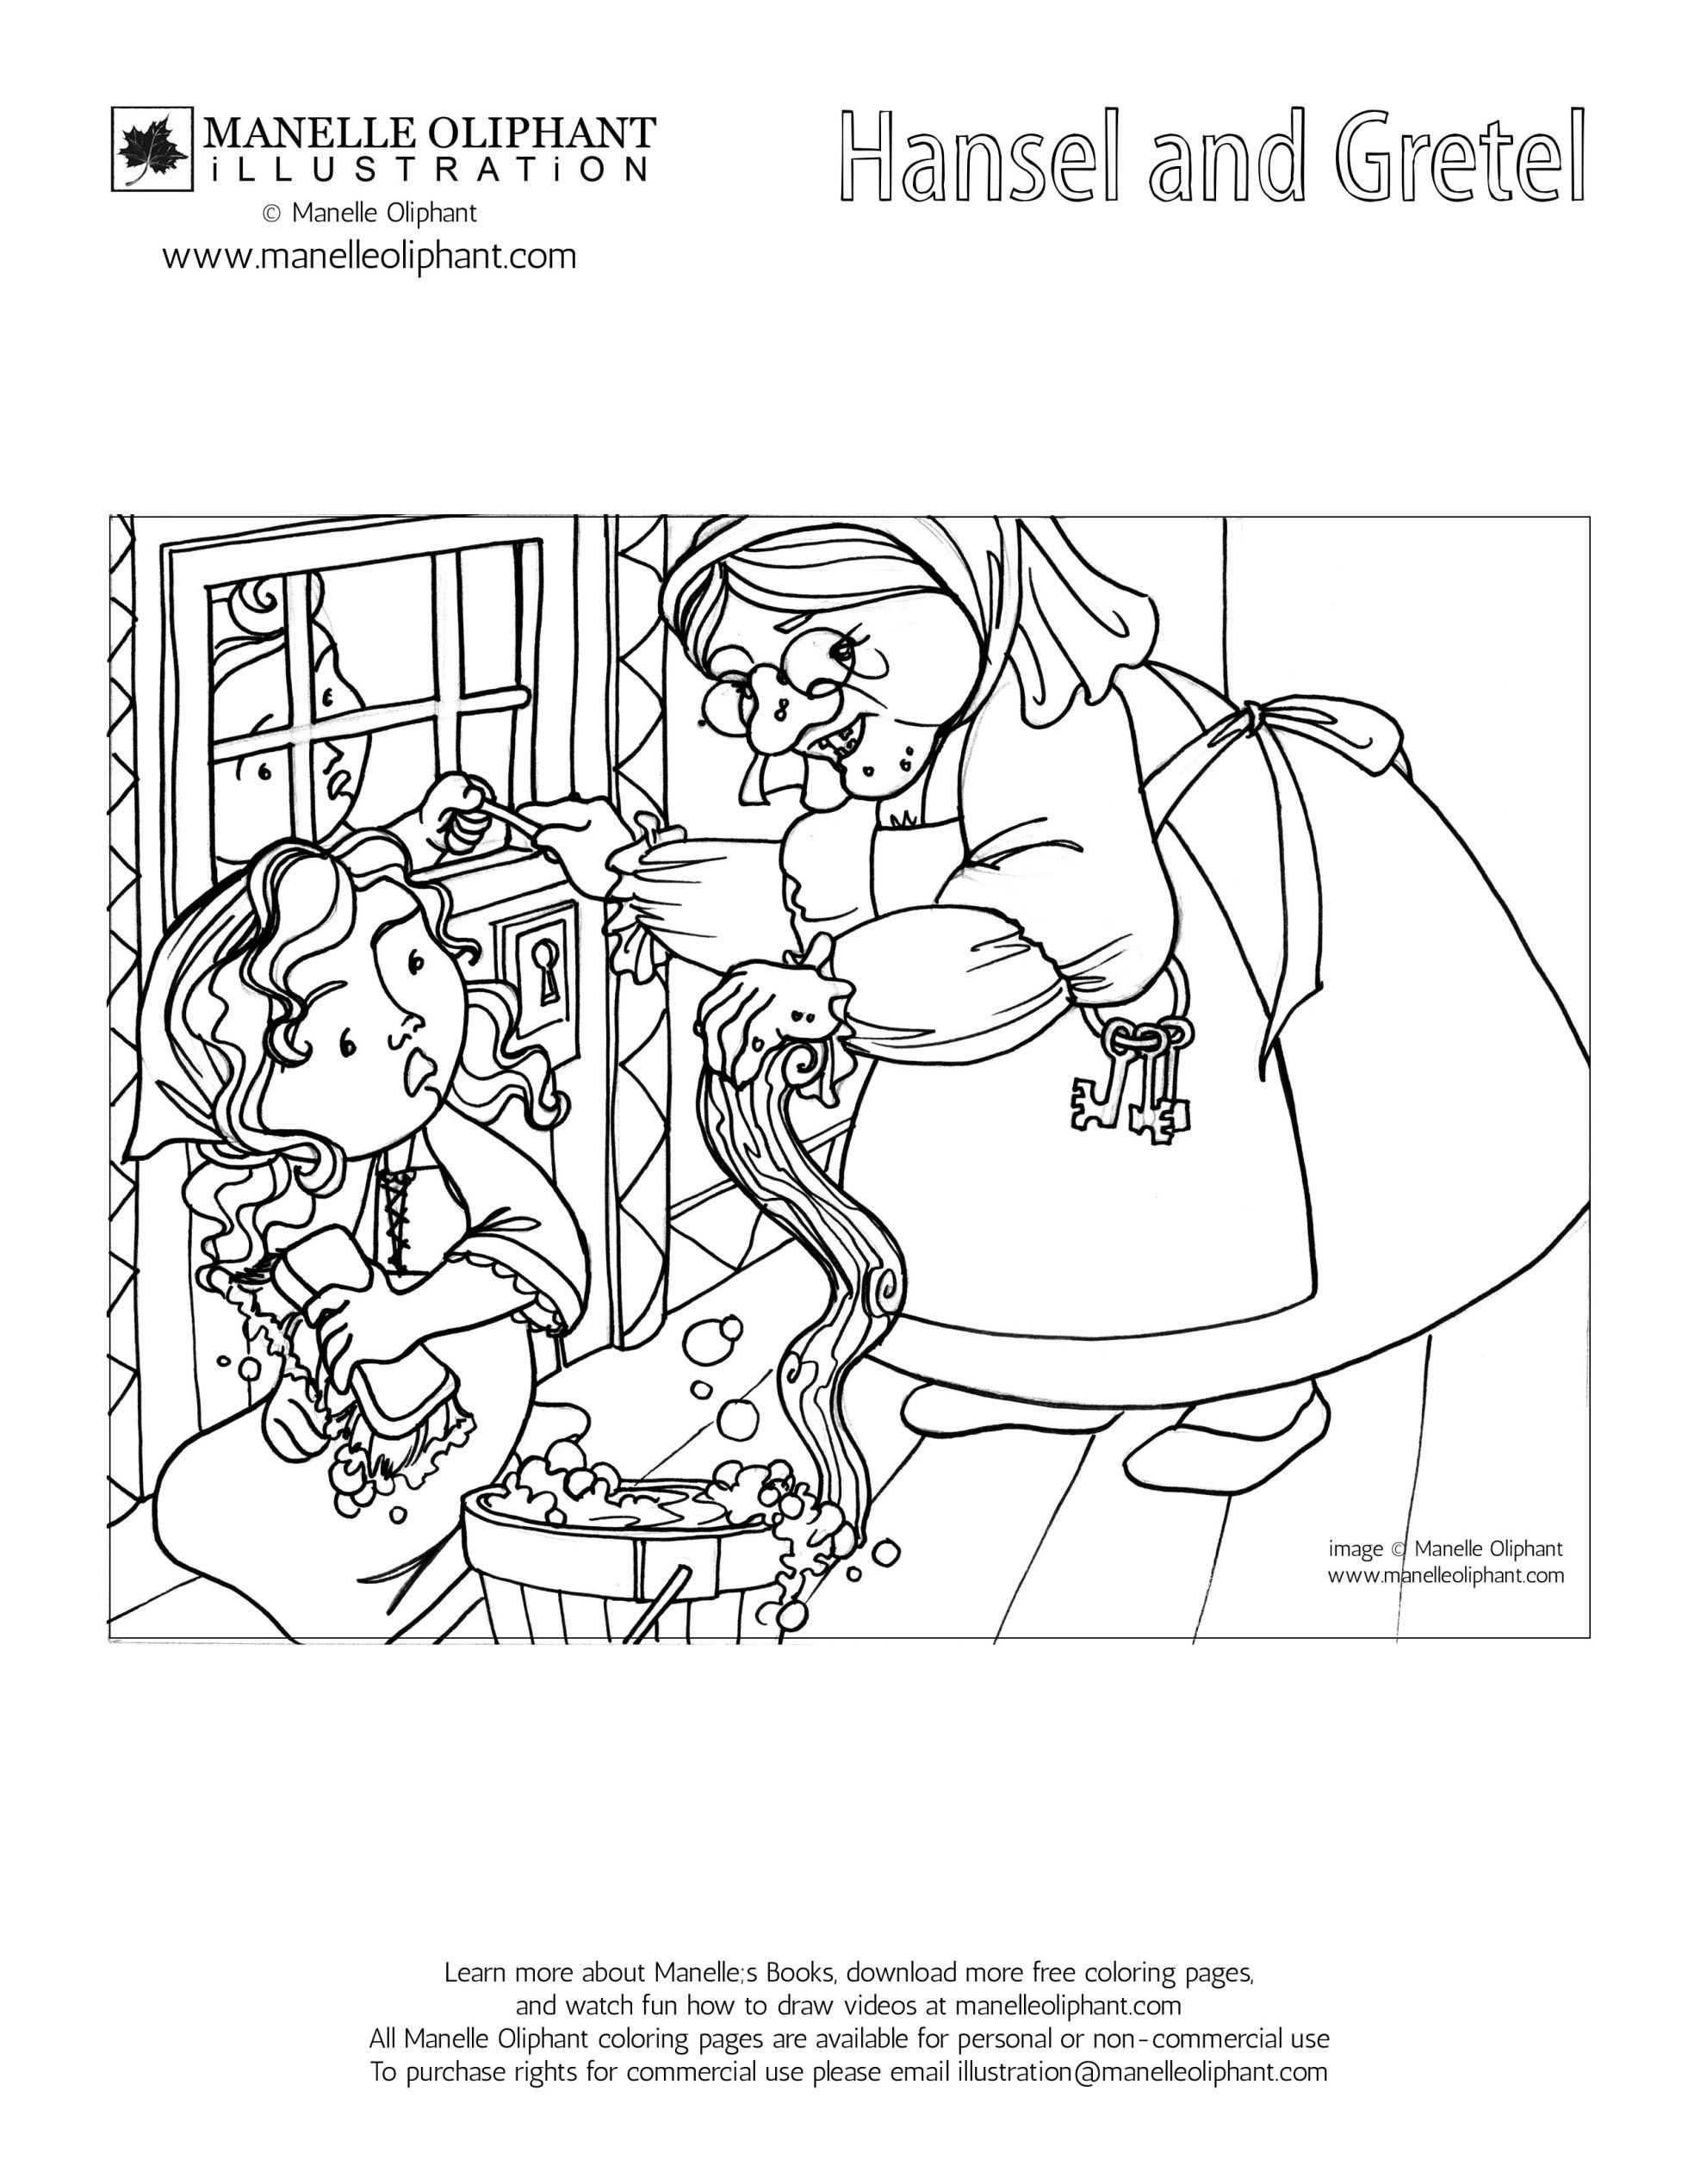 Free Coloring Page Friday: Hansel and Gretel